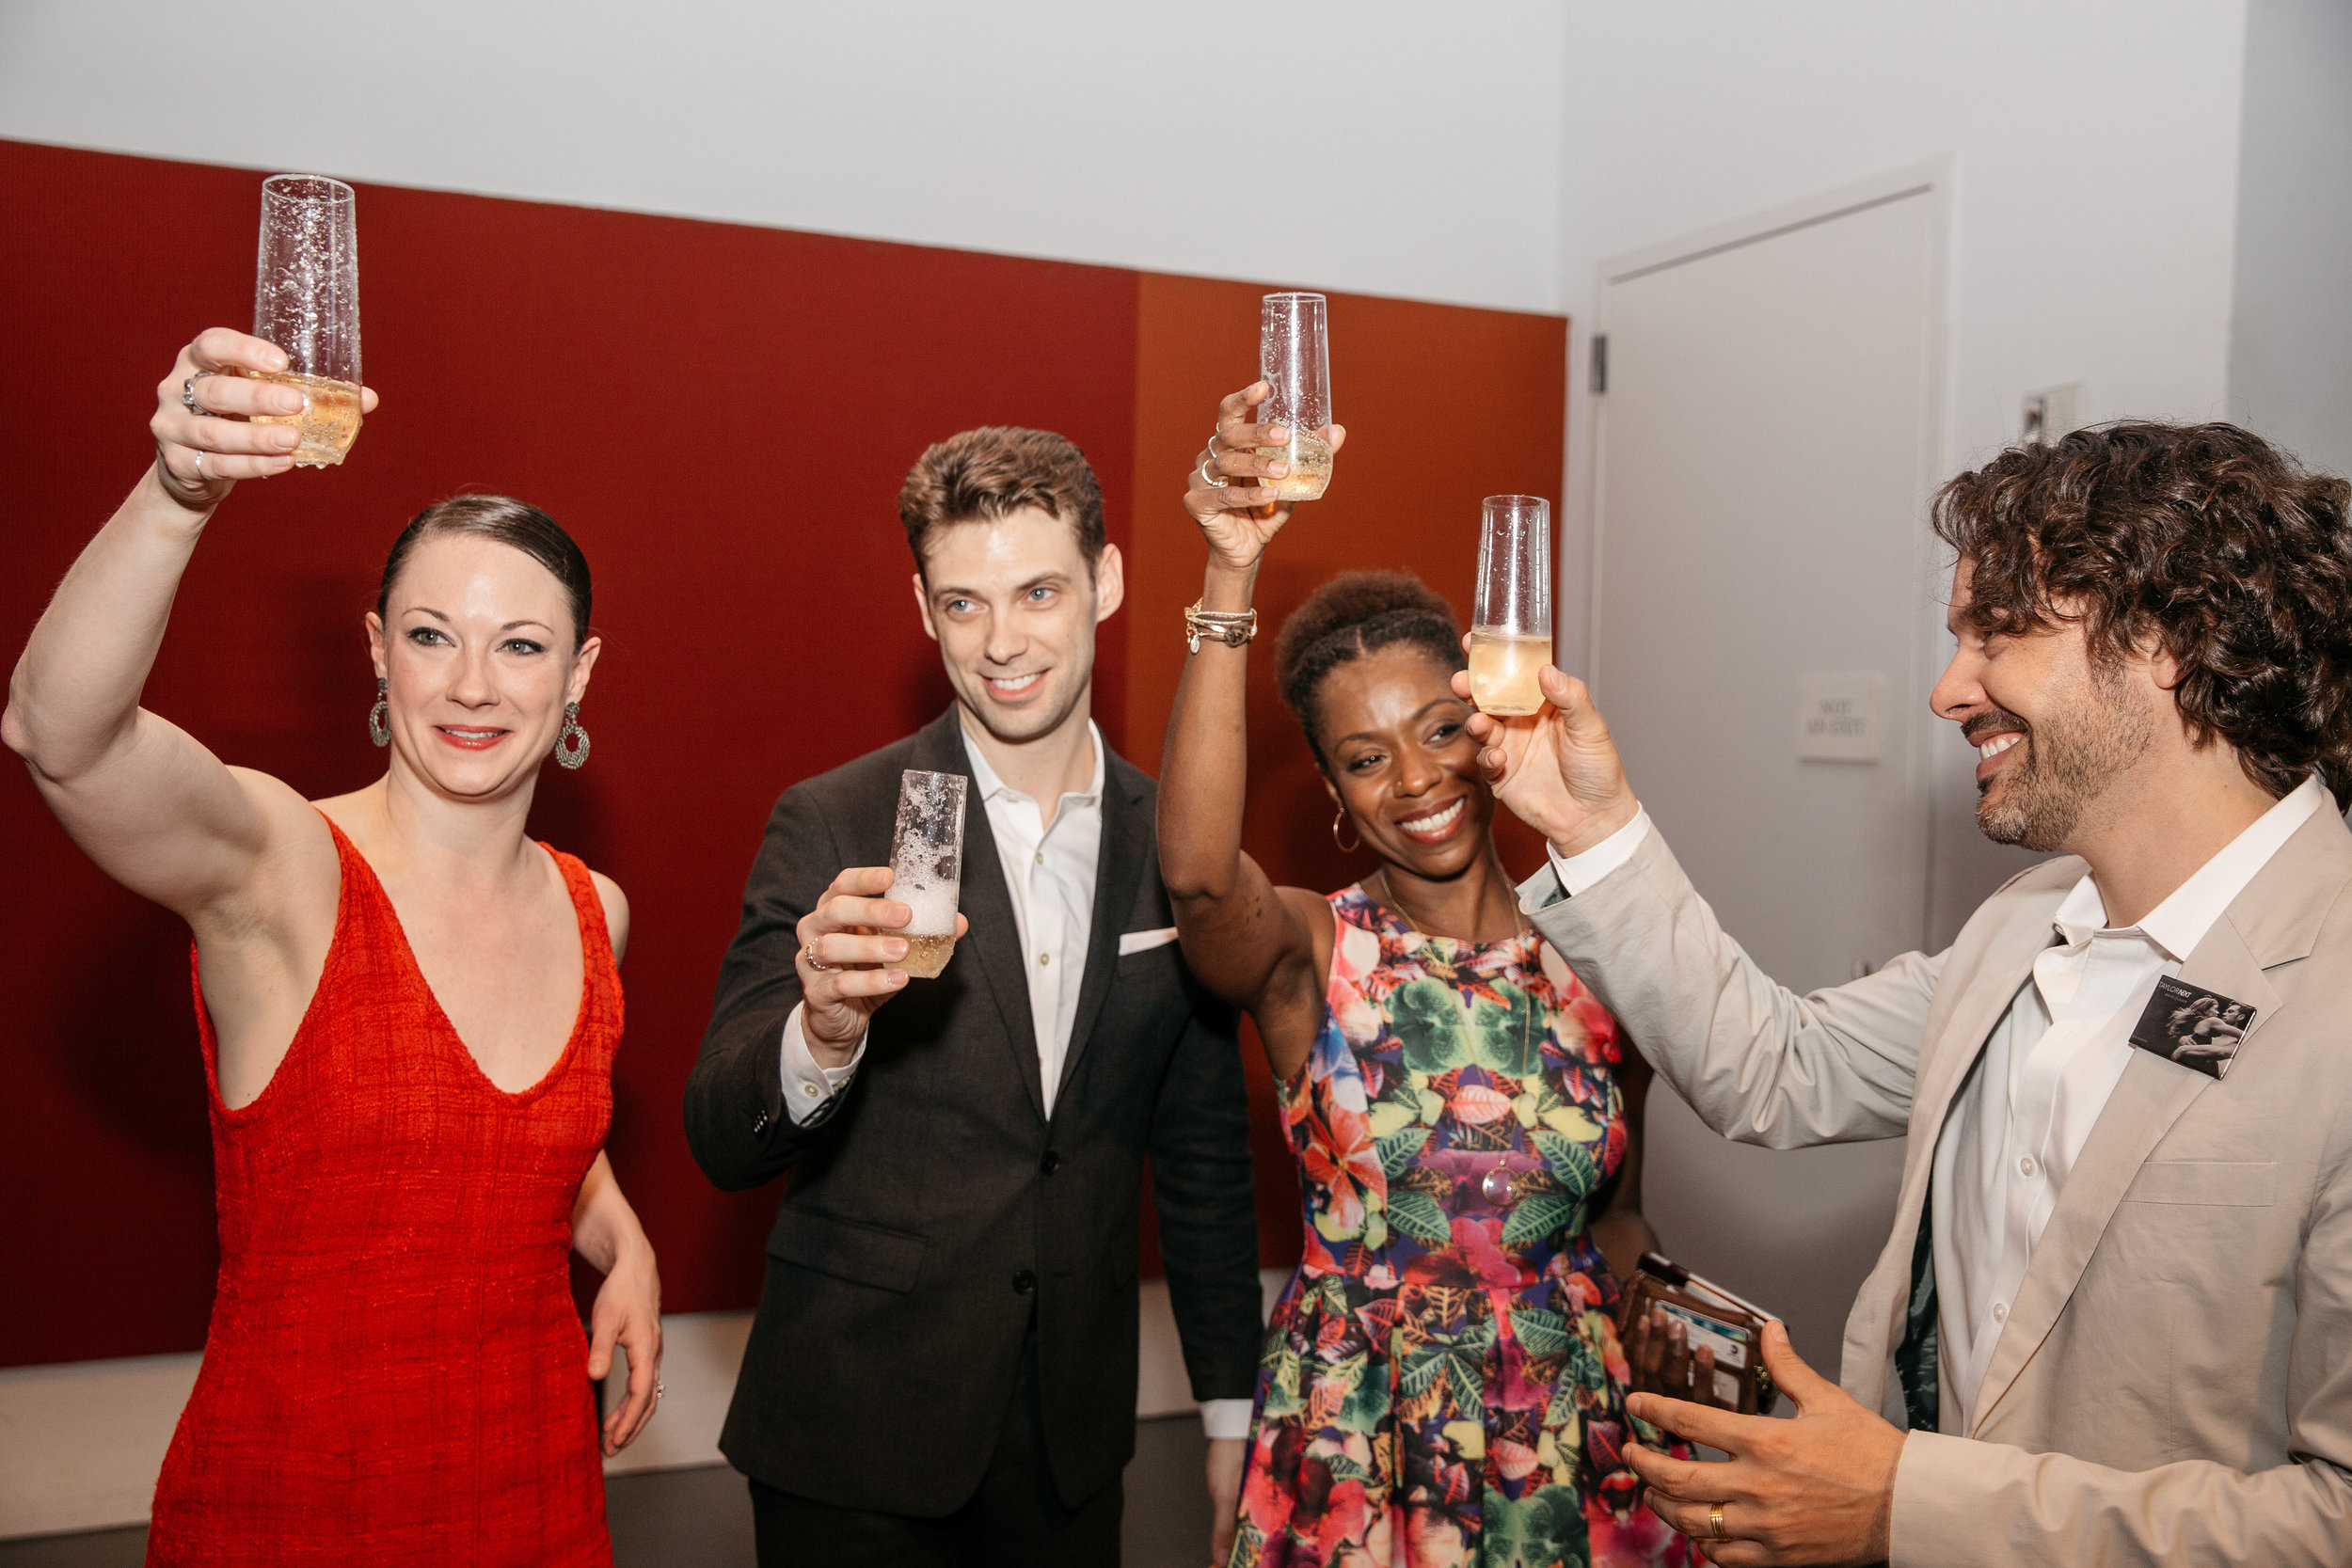 Bach Festival Closing Party - June 23, 2019TaylorNEXT hosted this intimate celebration after the Company's final performance in the Orchestra of St. Luke's three-week festival. Our young members joined long-time patrons for refreshments and live music.View photo gallery